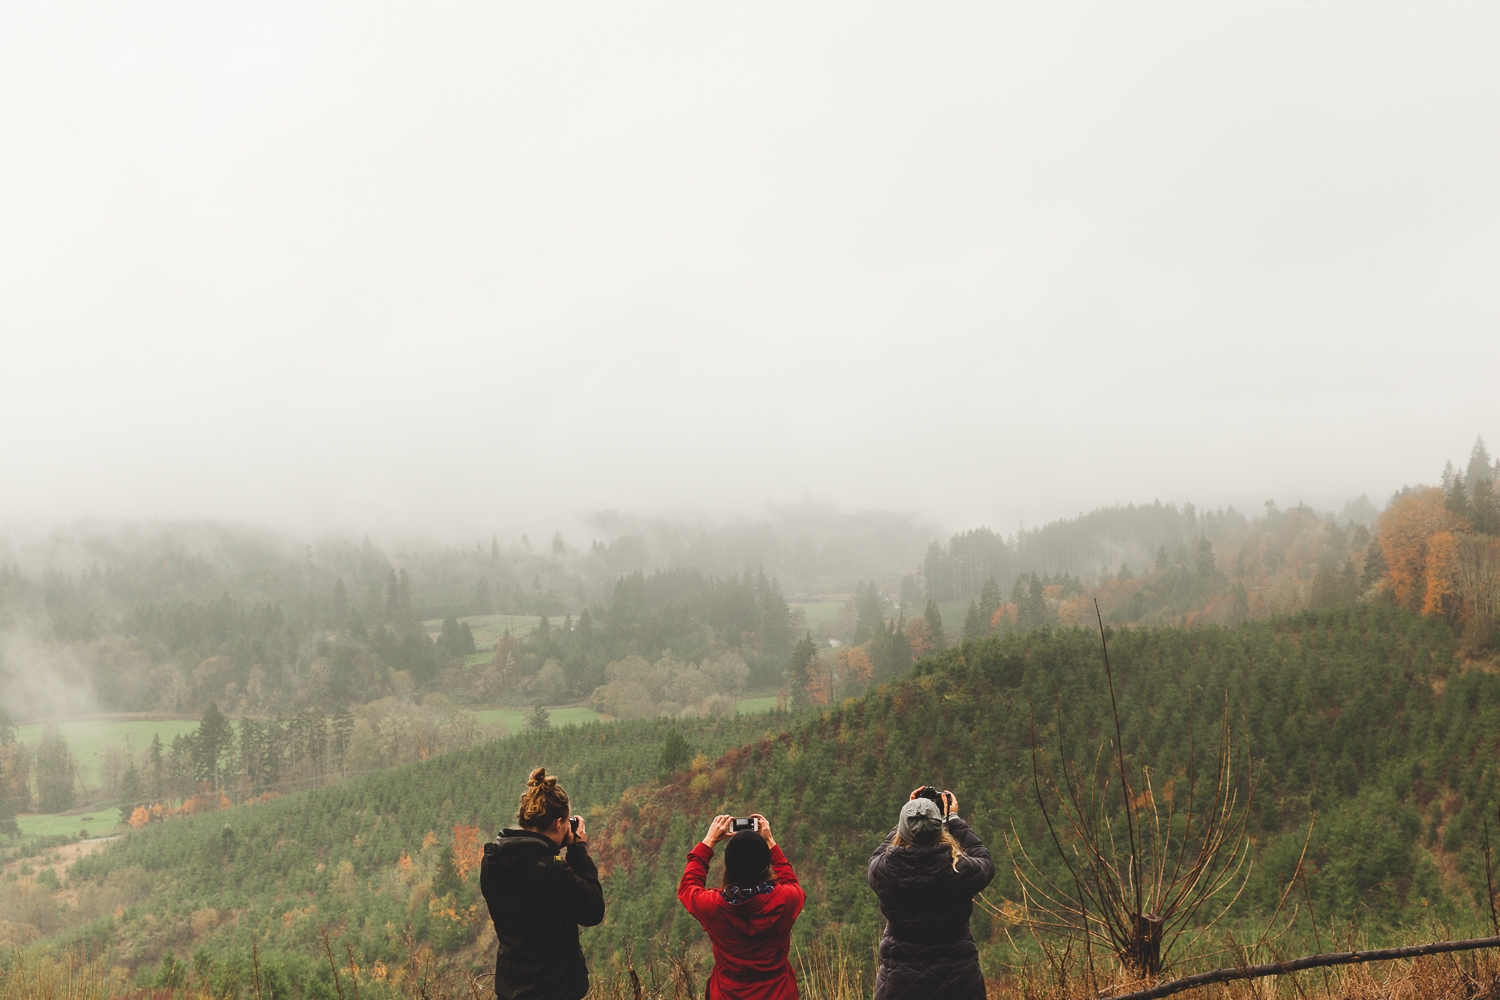 Annelien Nijland, Katie Kett and Lina Kiznyte shooting in the foggy hills of the washington coast